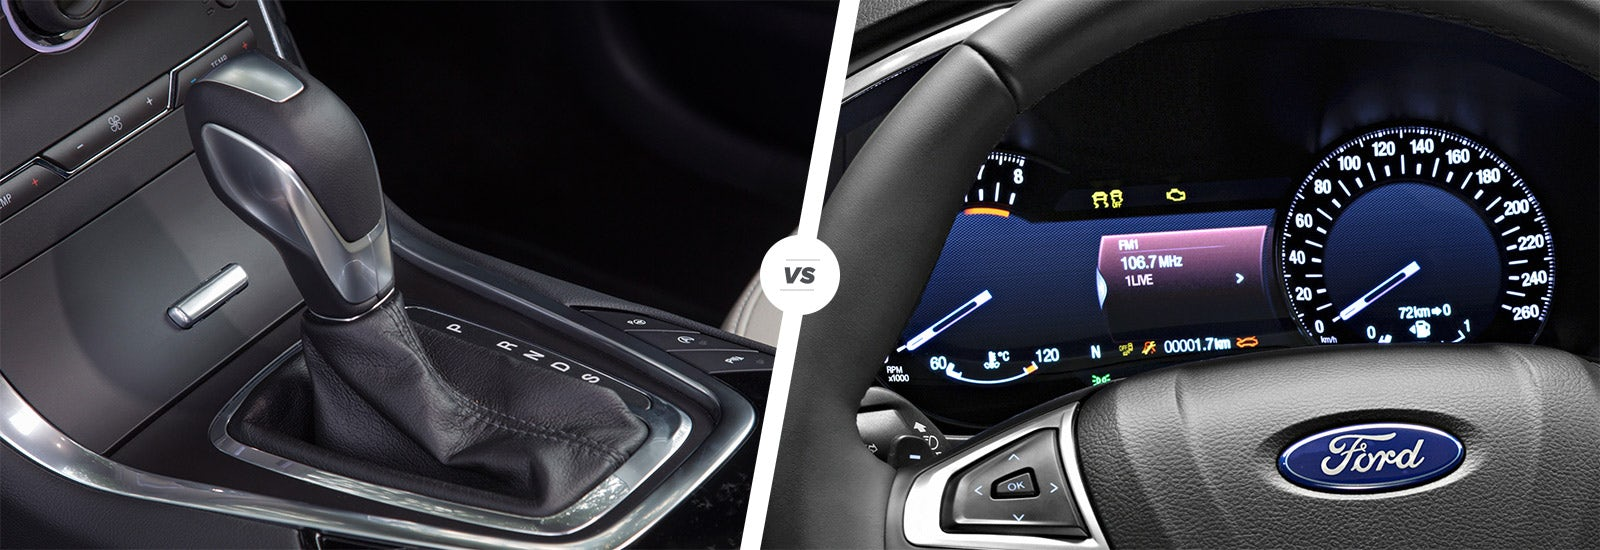 Ford galaxy vs ford s max engines